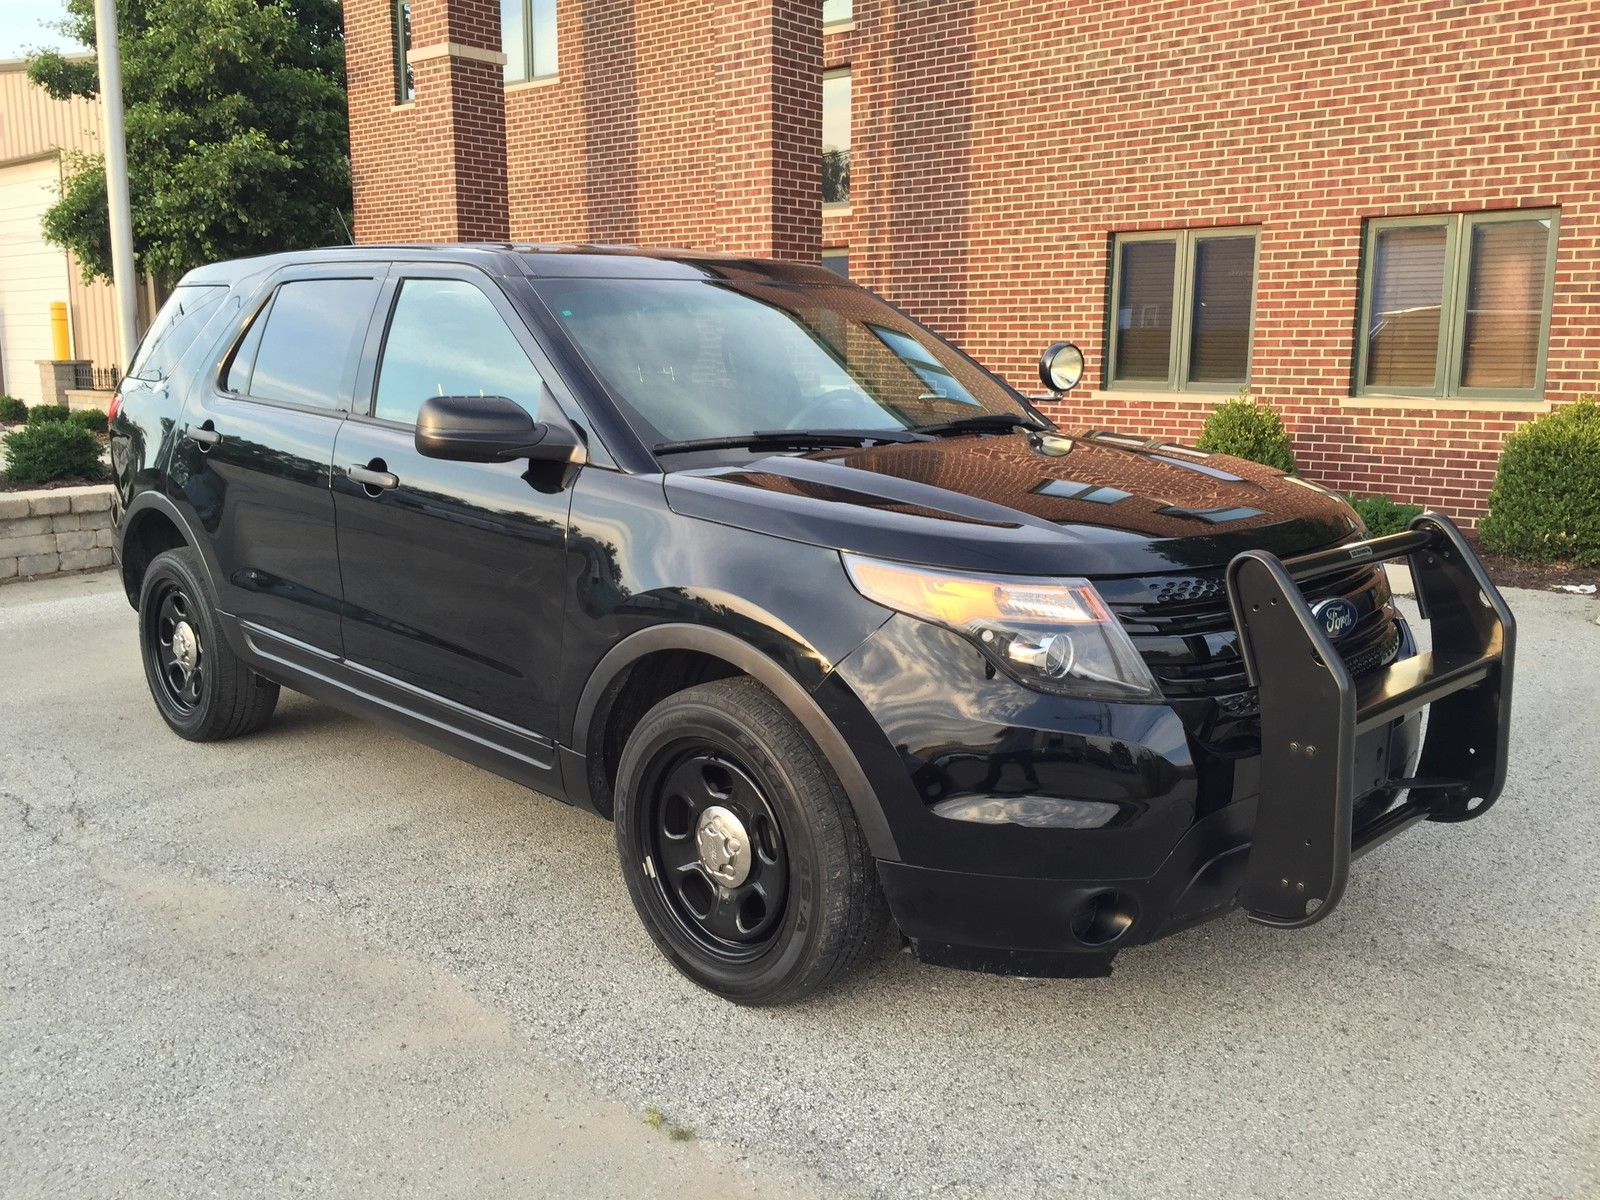 2014 Ford Explorer Police Interceptor 3 7l Awd 2014 Ford